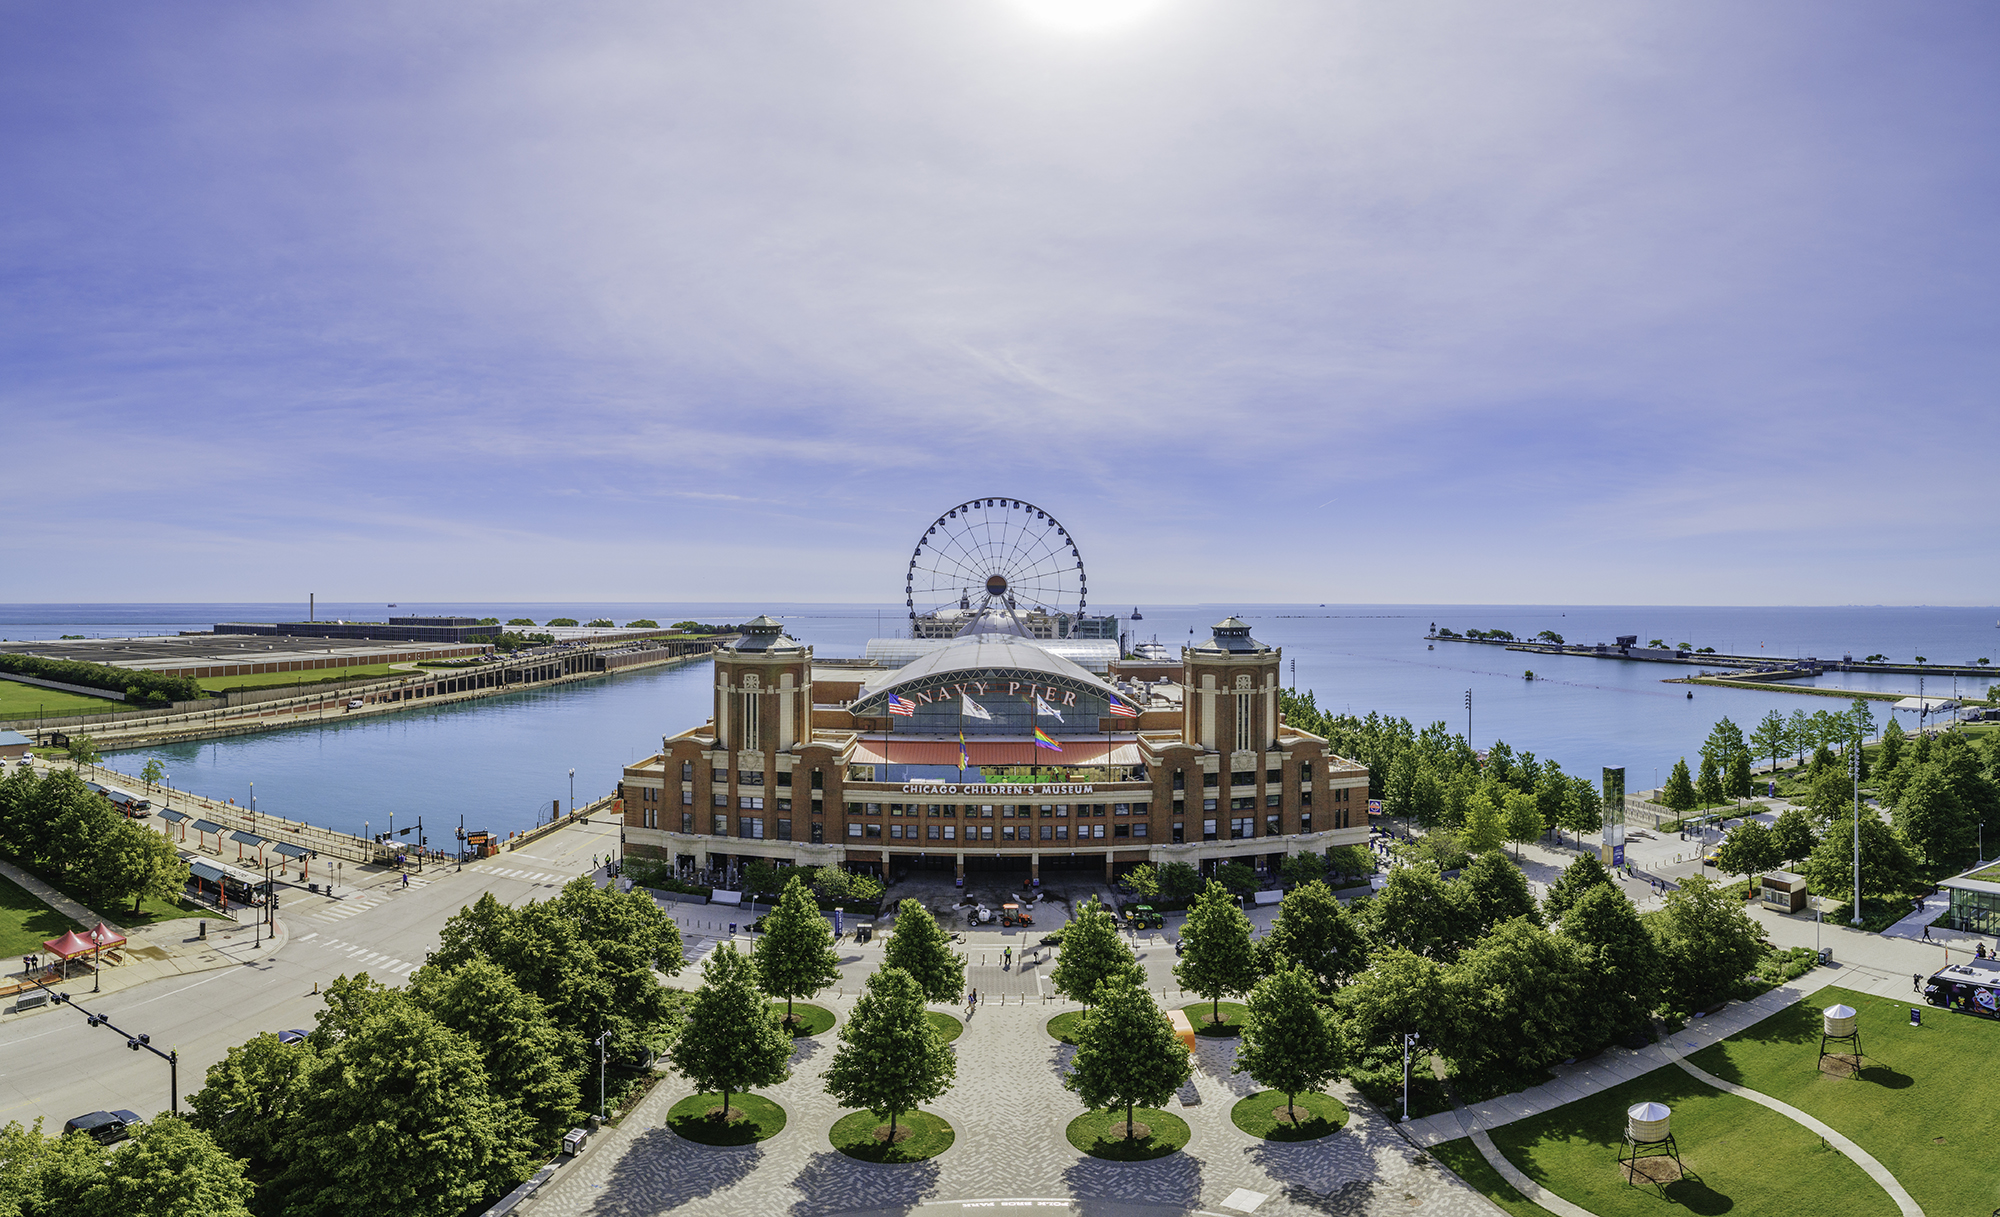 A Note from Navy Pier President and CEO Marilynn Gardner in Response to Nationwide Racial Injustices